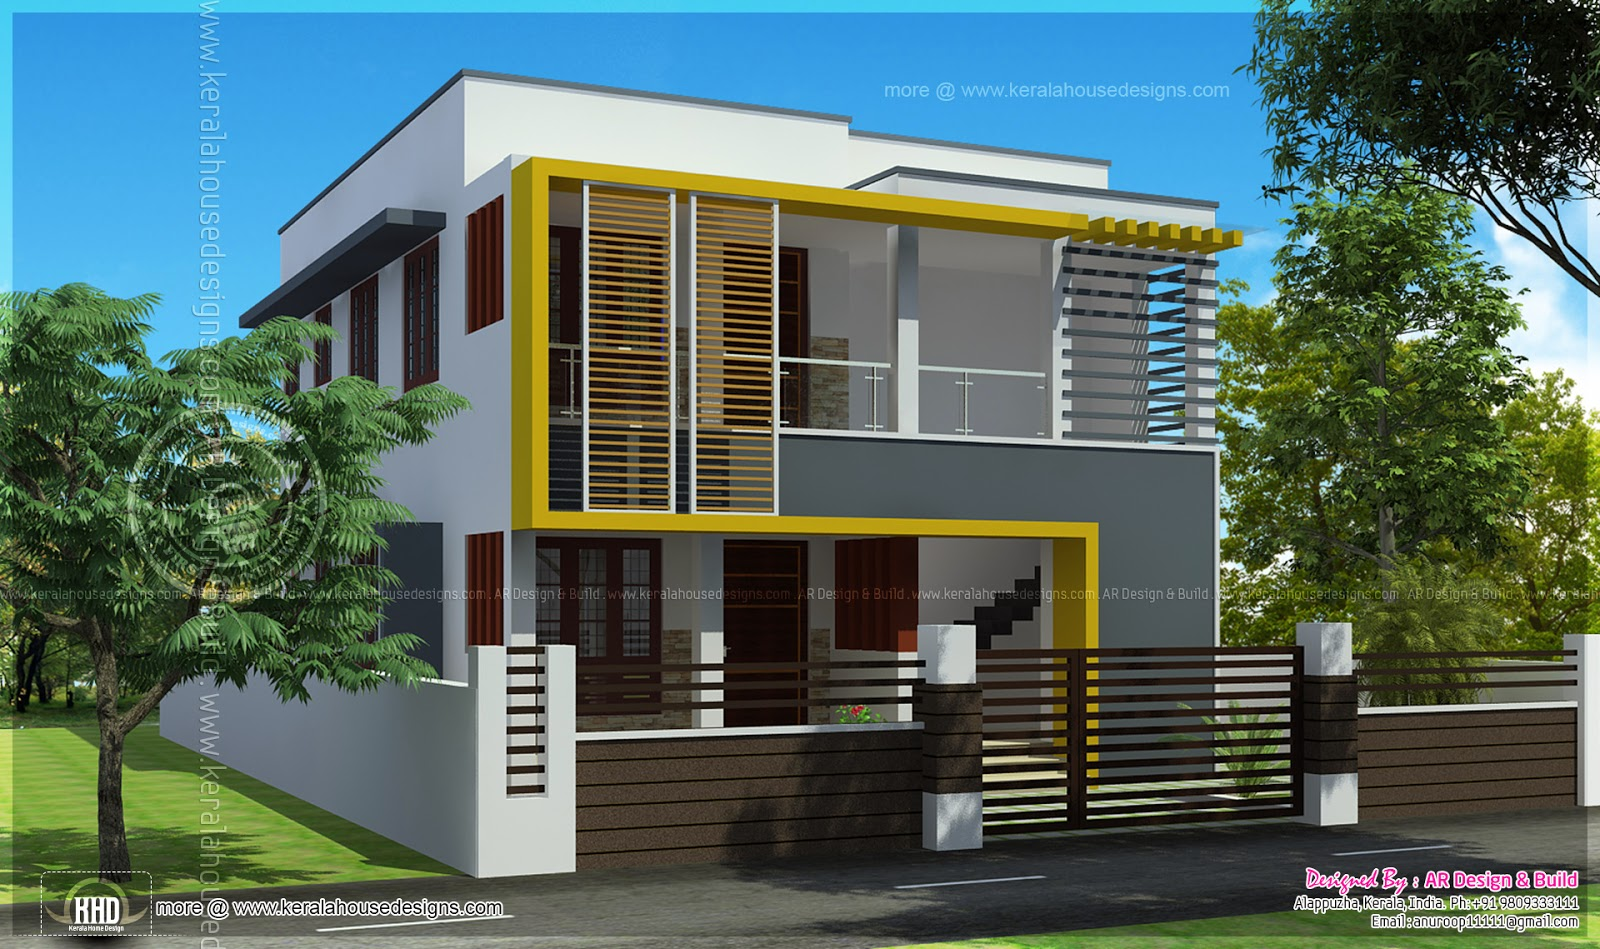 Duplex House Front Elevation Images : Duplex house elevation sq feet each kerala home